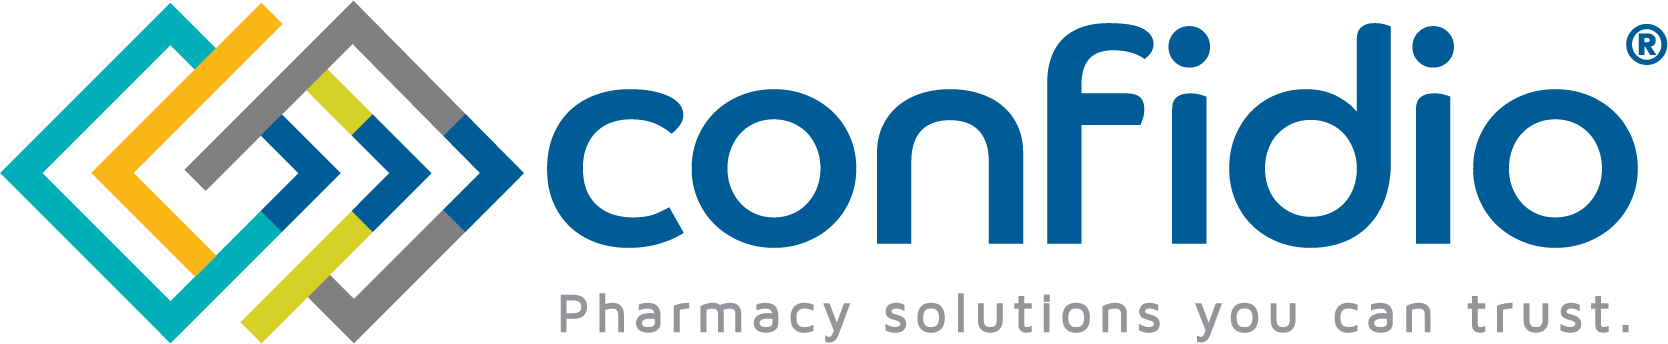 RxBenefits Acquires Pharmaceutical Benefits Consulting Firm Confidio